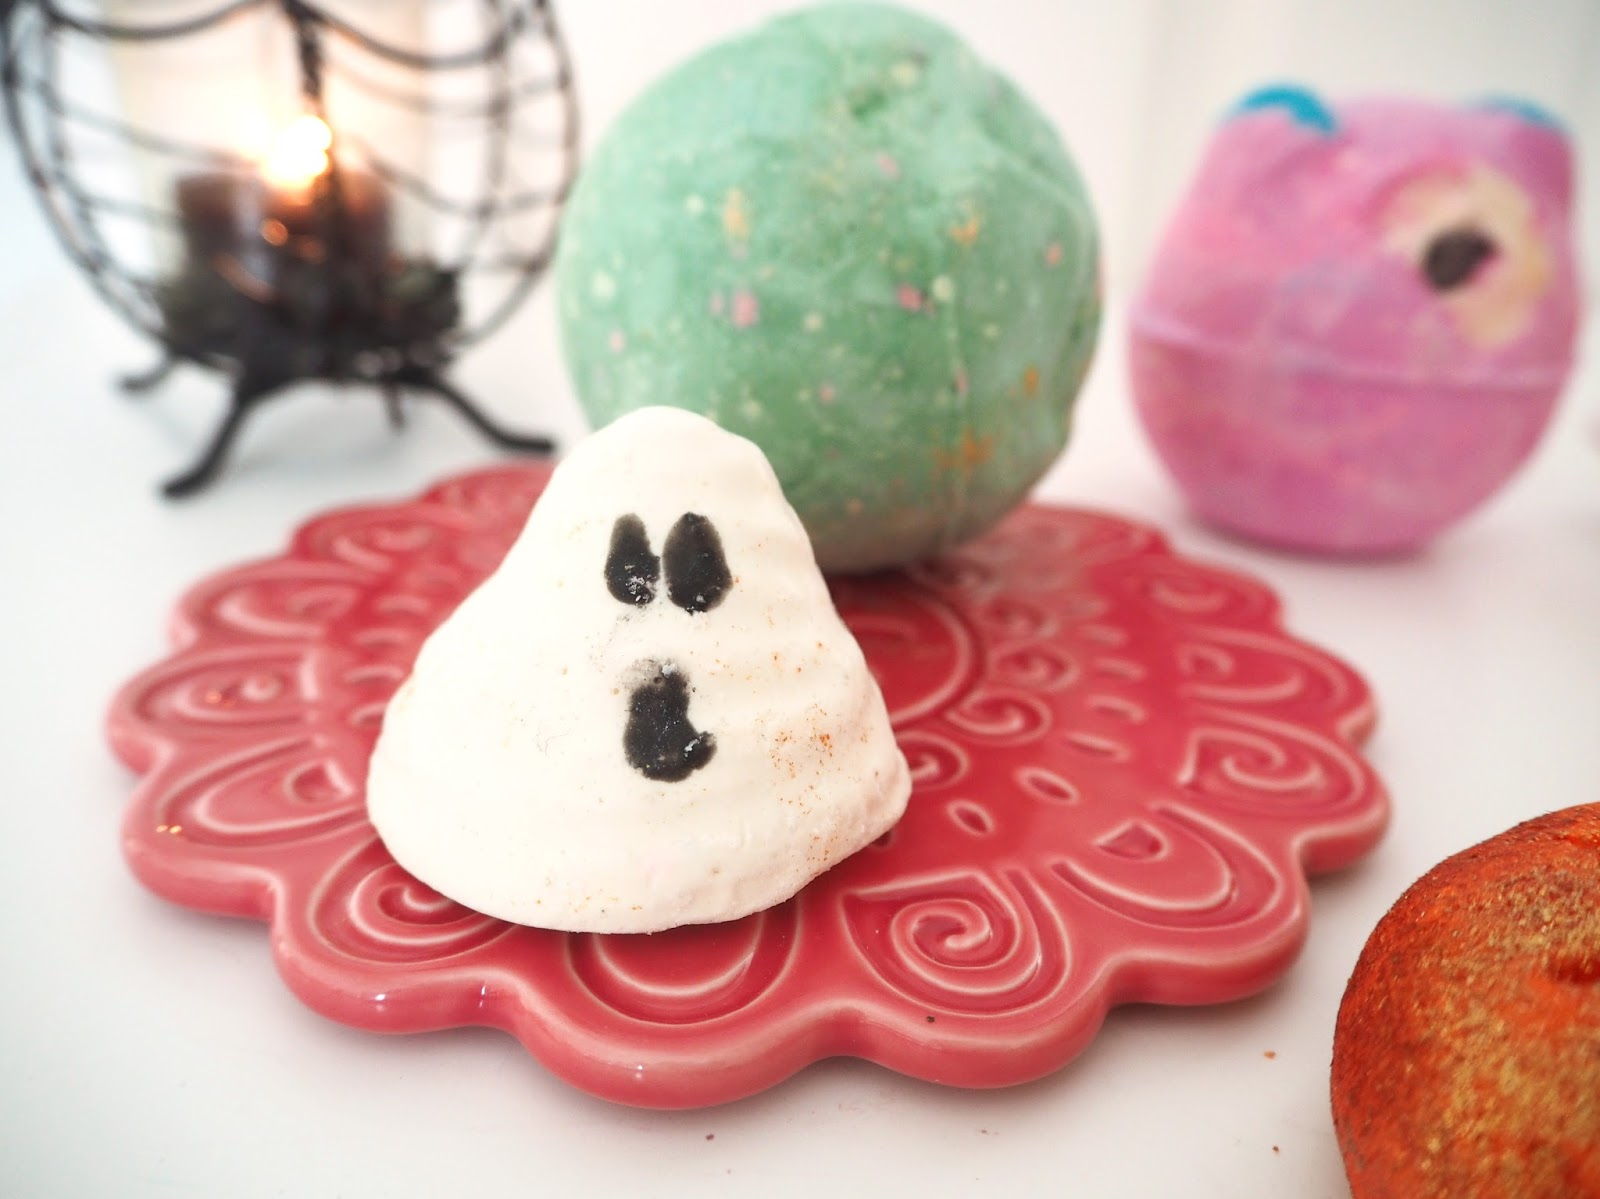 Lush Halloween Collection 2016, Katie Kirk Loves, Boo Bath Melt, Beauty Blogger, Bath Products, Lush UK